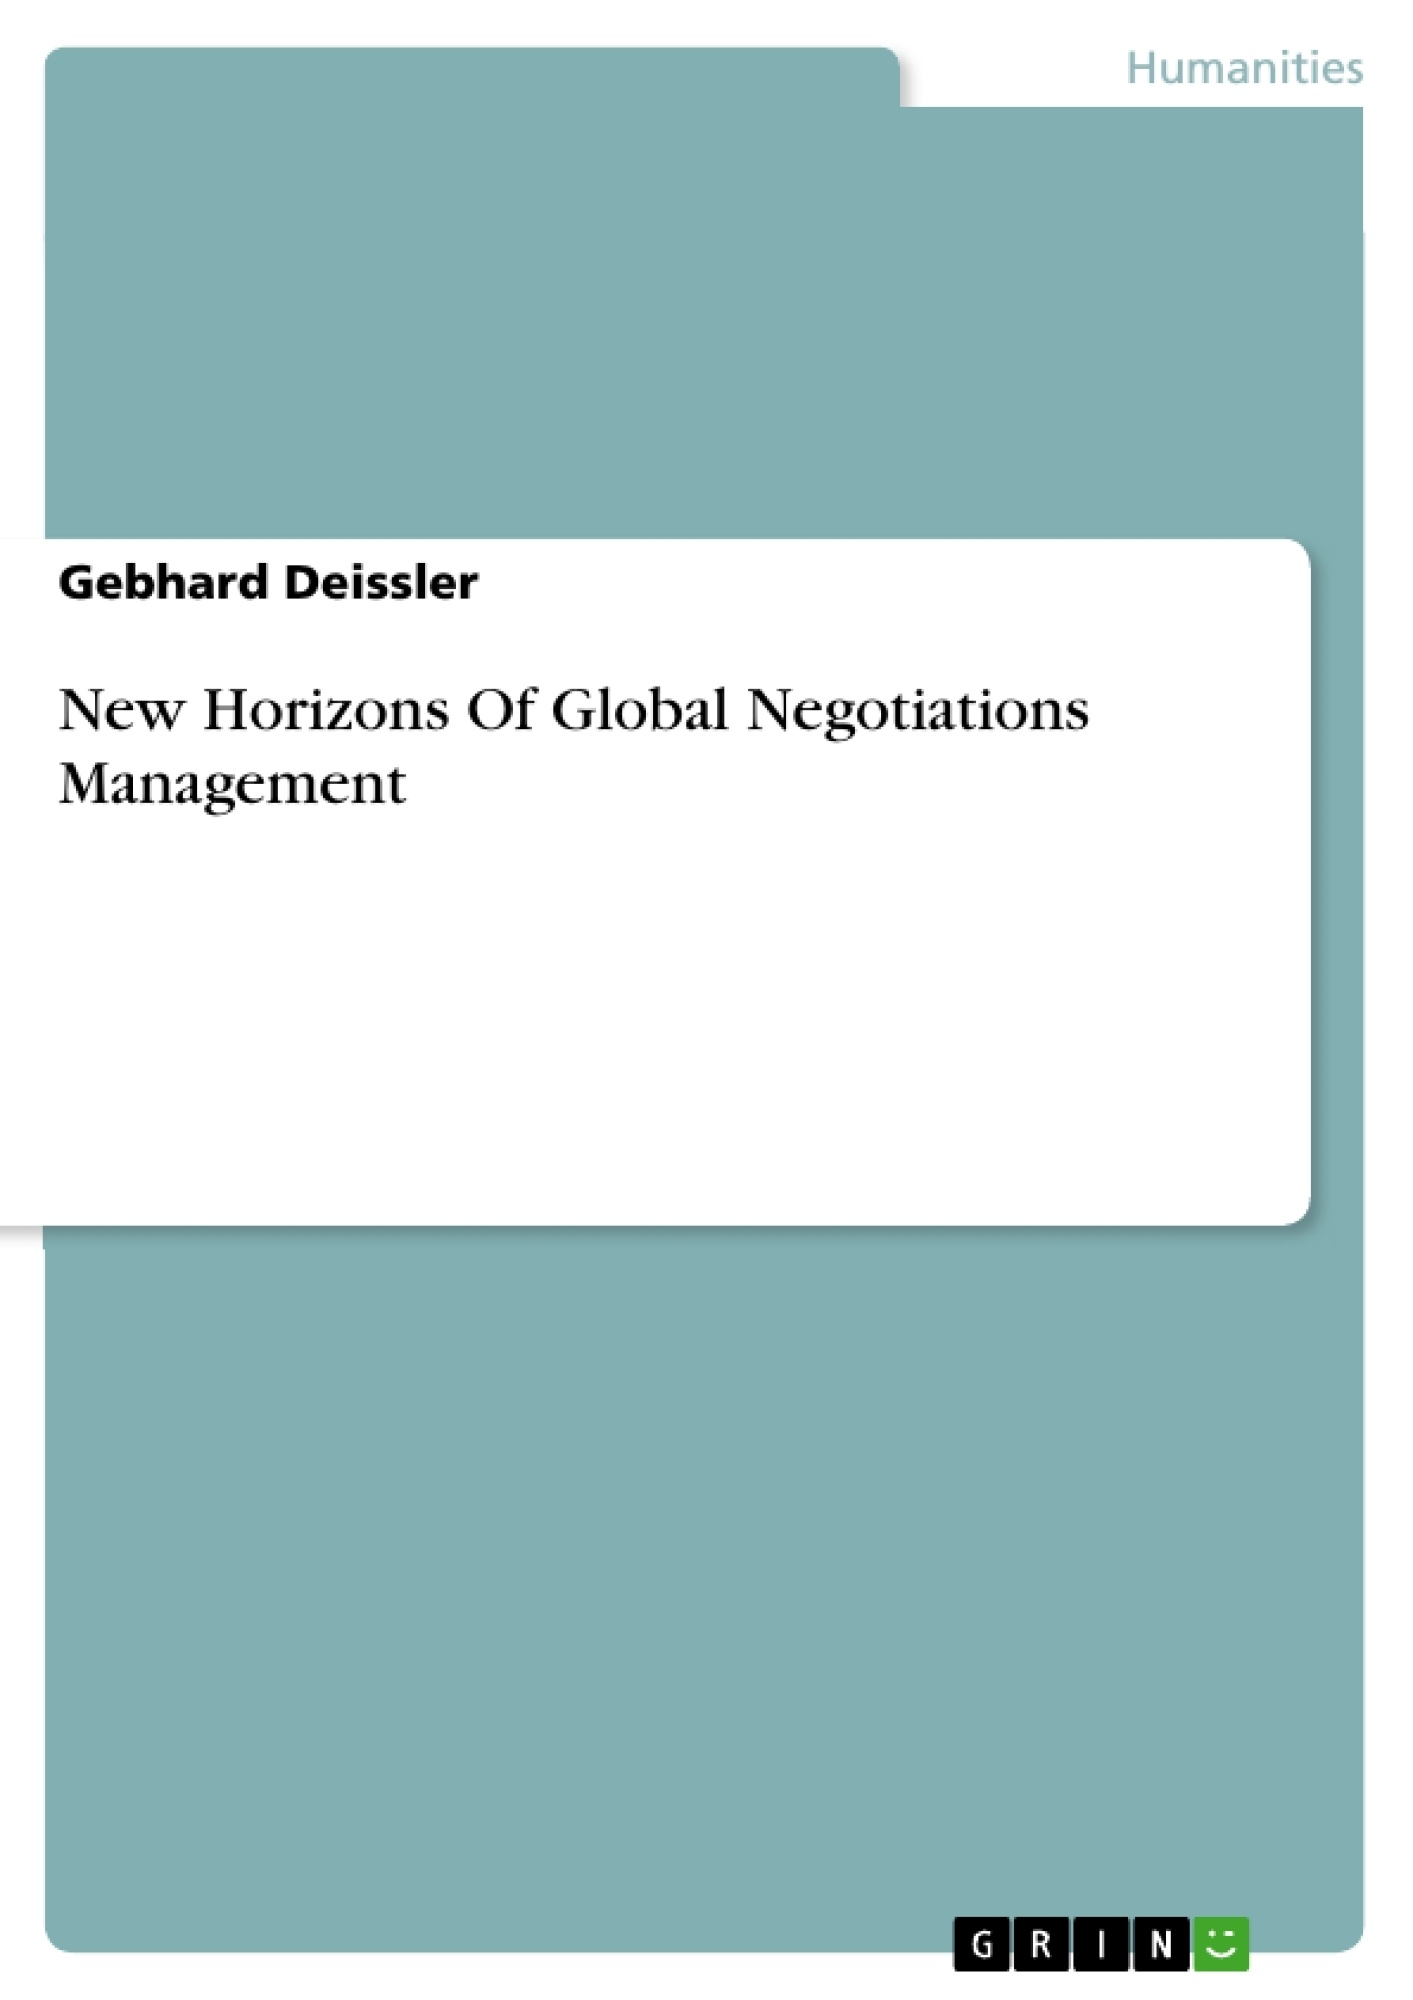 Title: New Horizons Of Global Negotiations Management